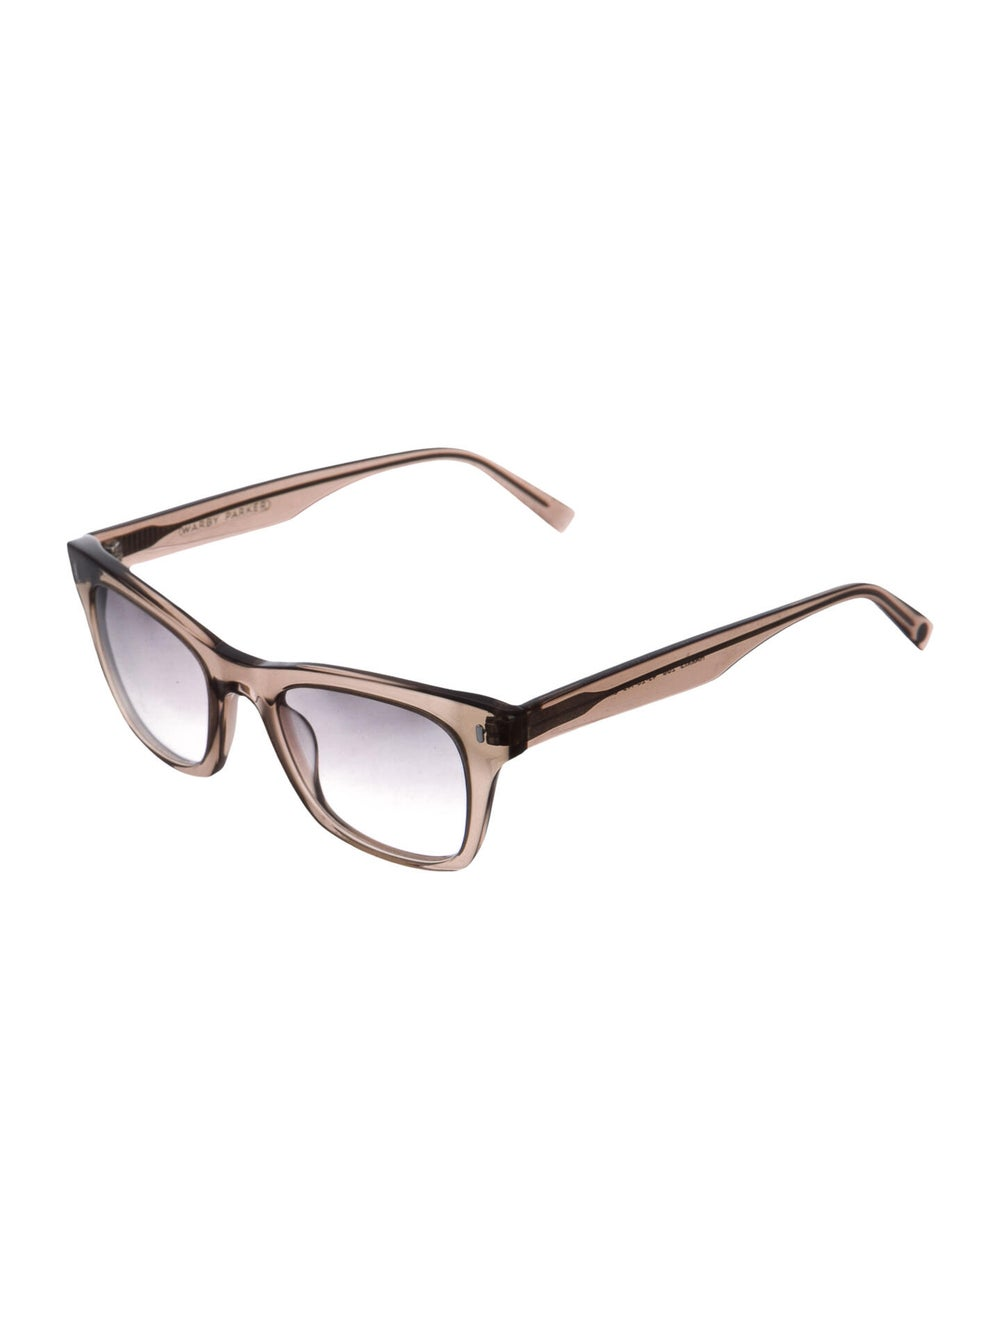 Warby Parker Harris Square Sunglasses - image 2